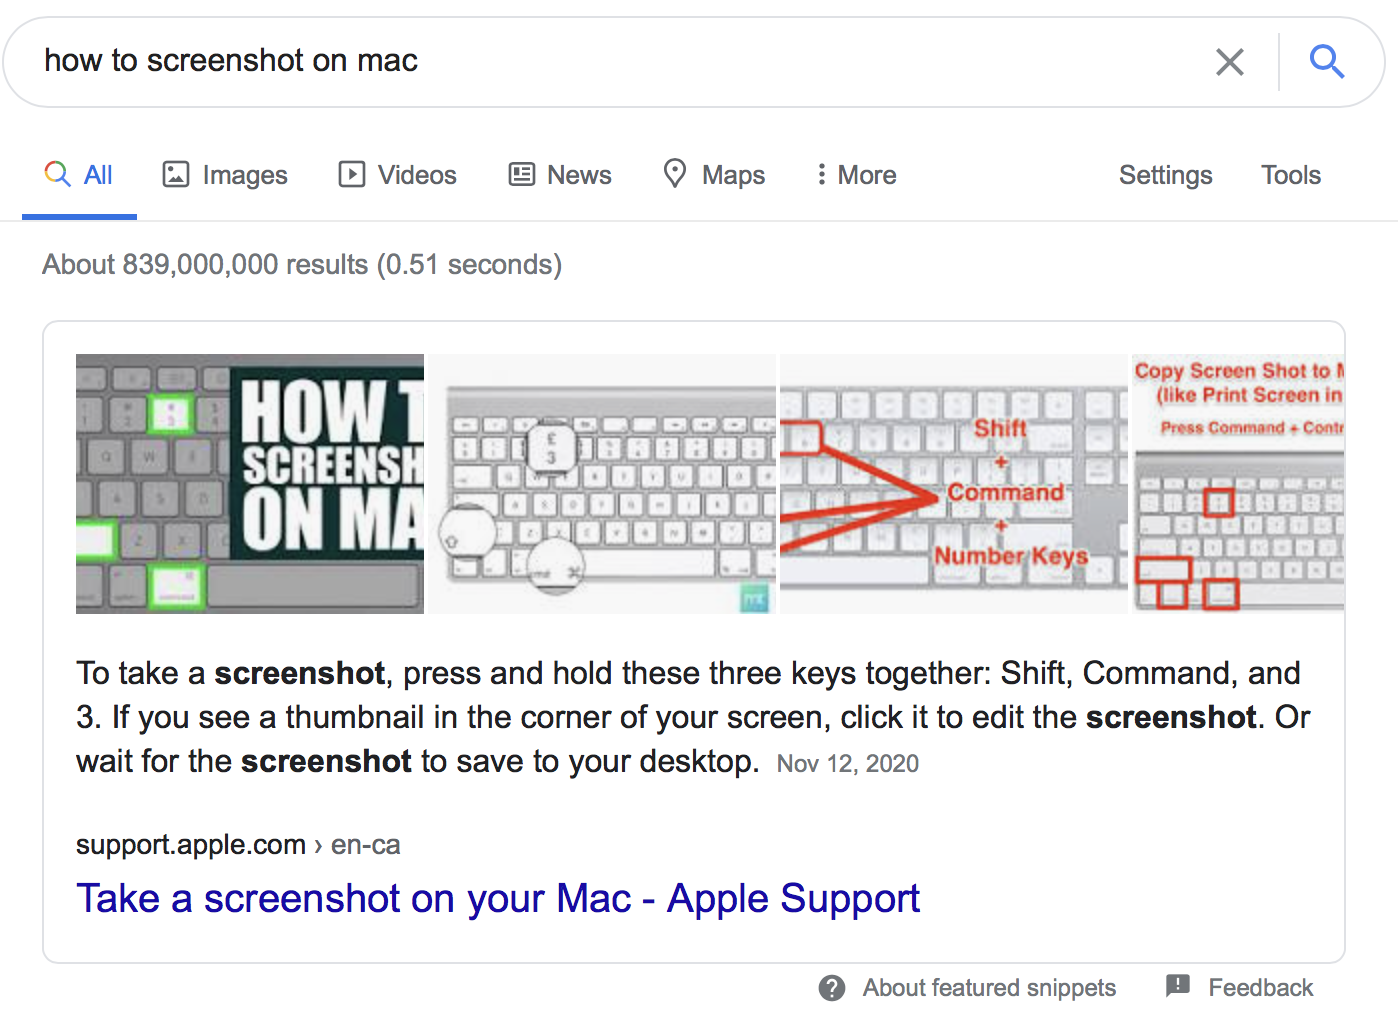 Featured snippets example of how to screenshot on a mac to help inclusive branding